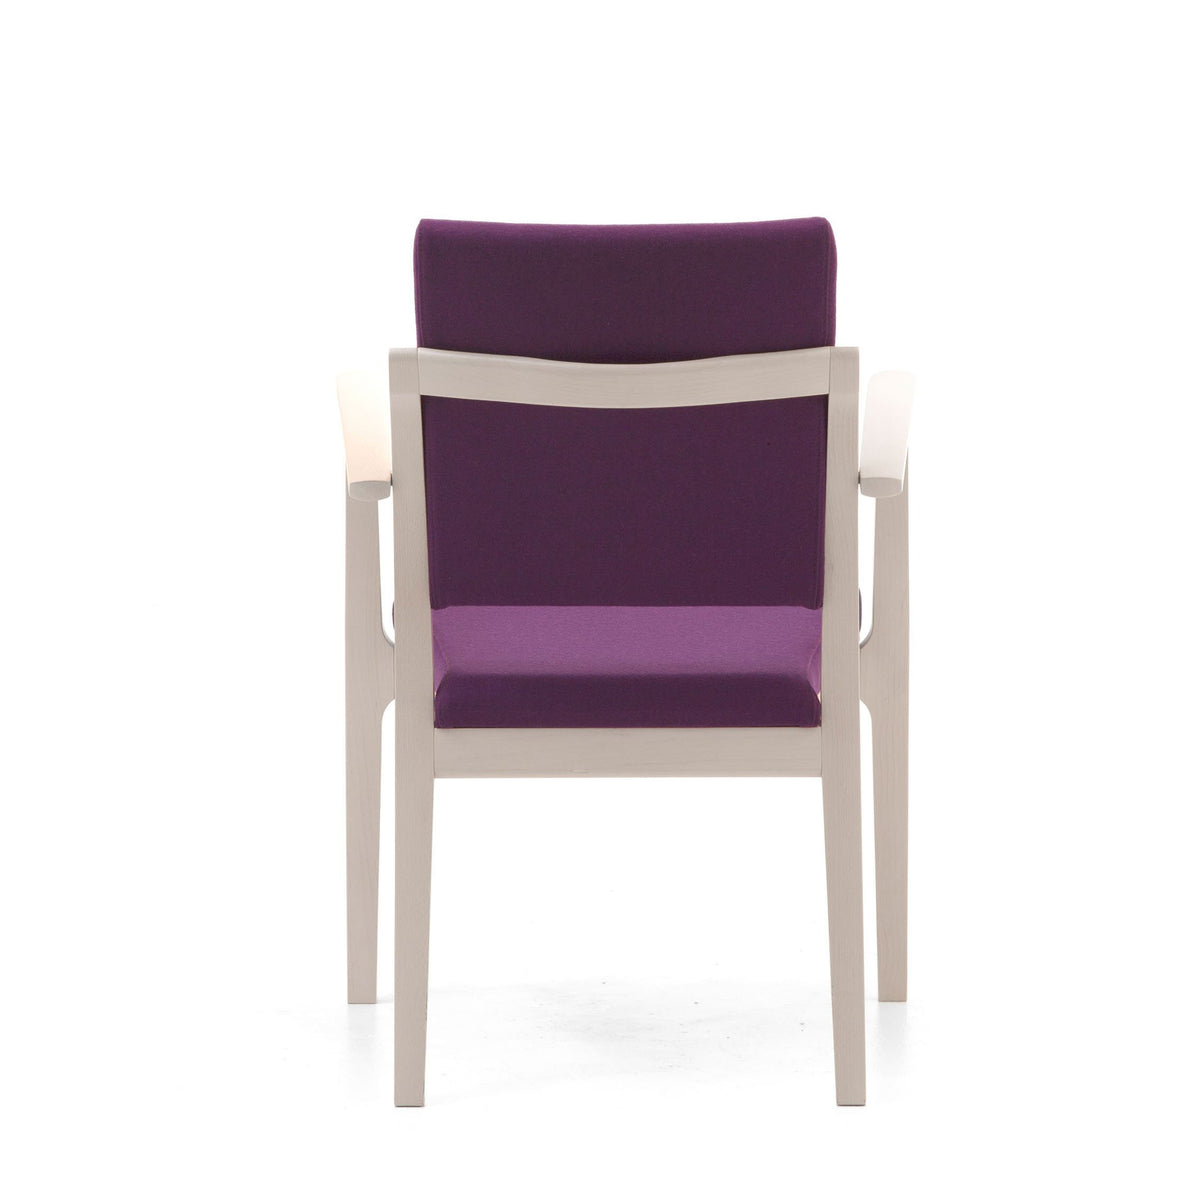 Mamy 66-14/1 Armchair-Piaval-Contract Furniture Store